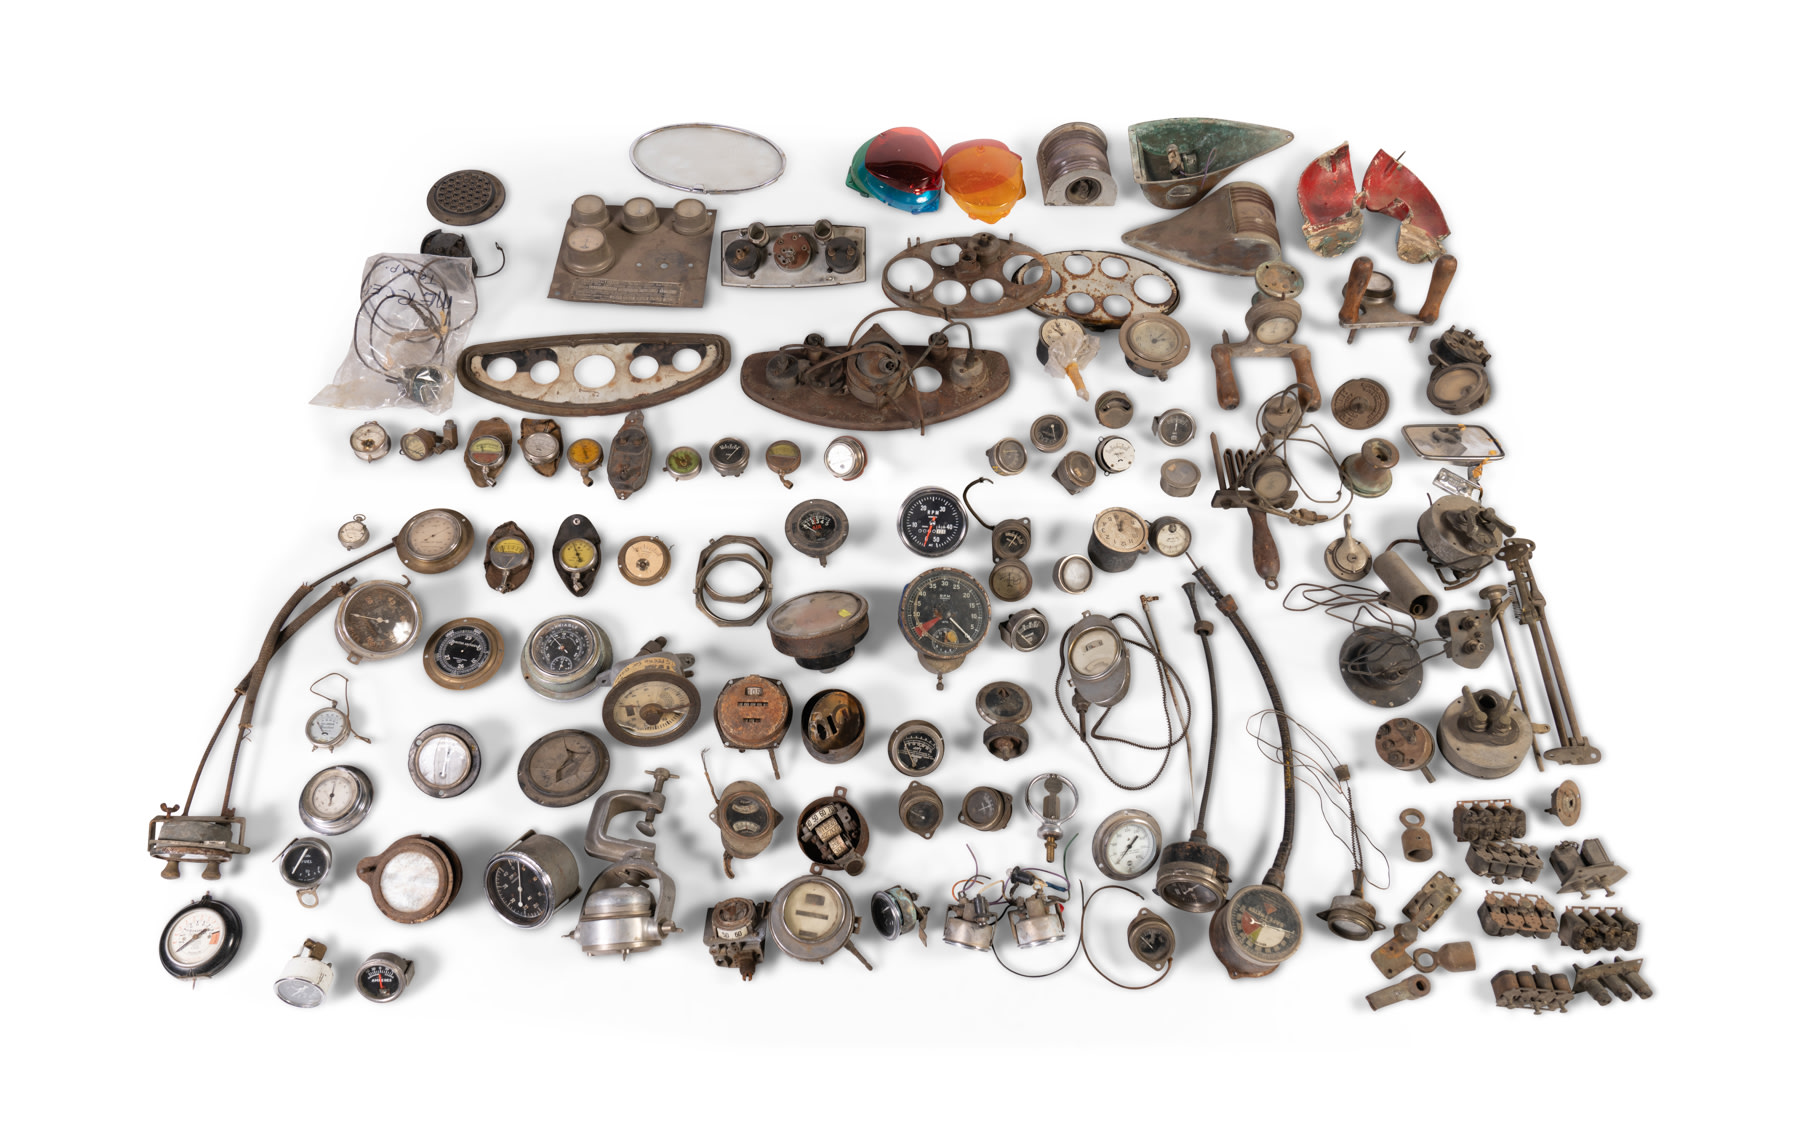 Assorted Automotive Gauges and Switches